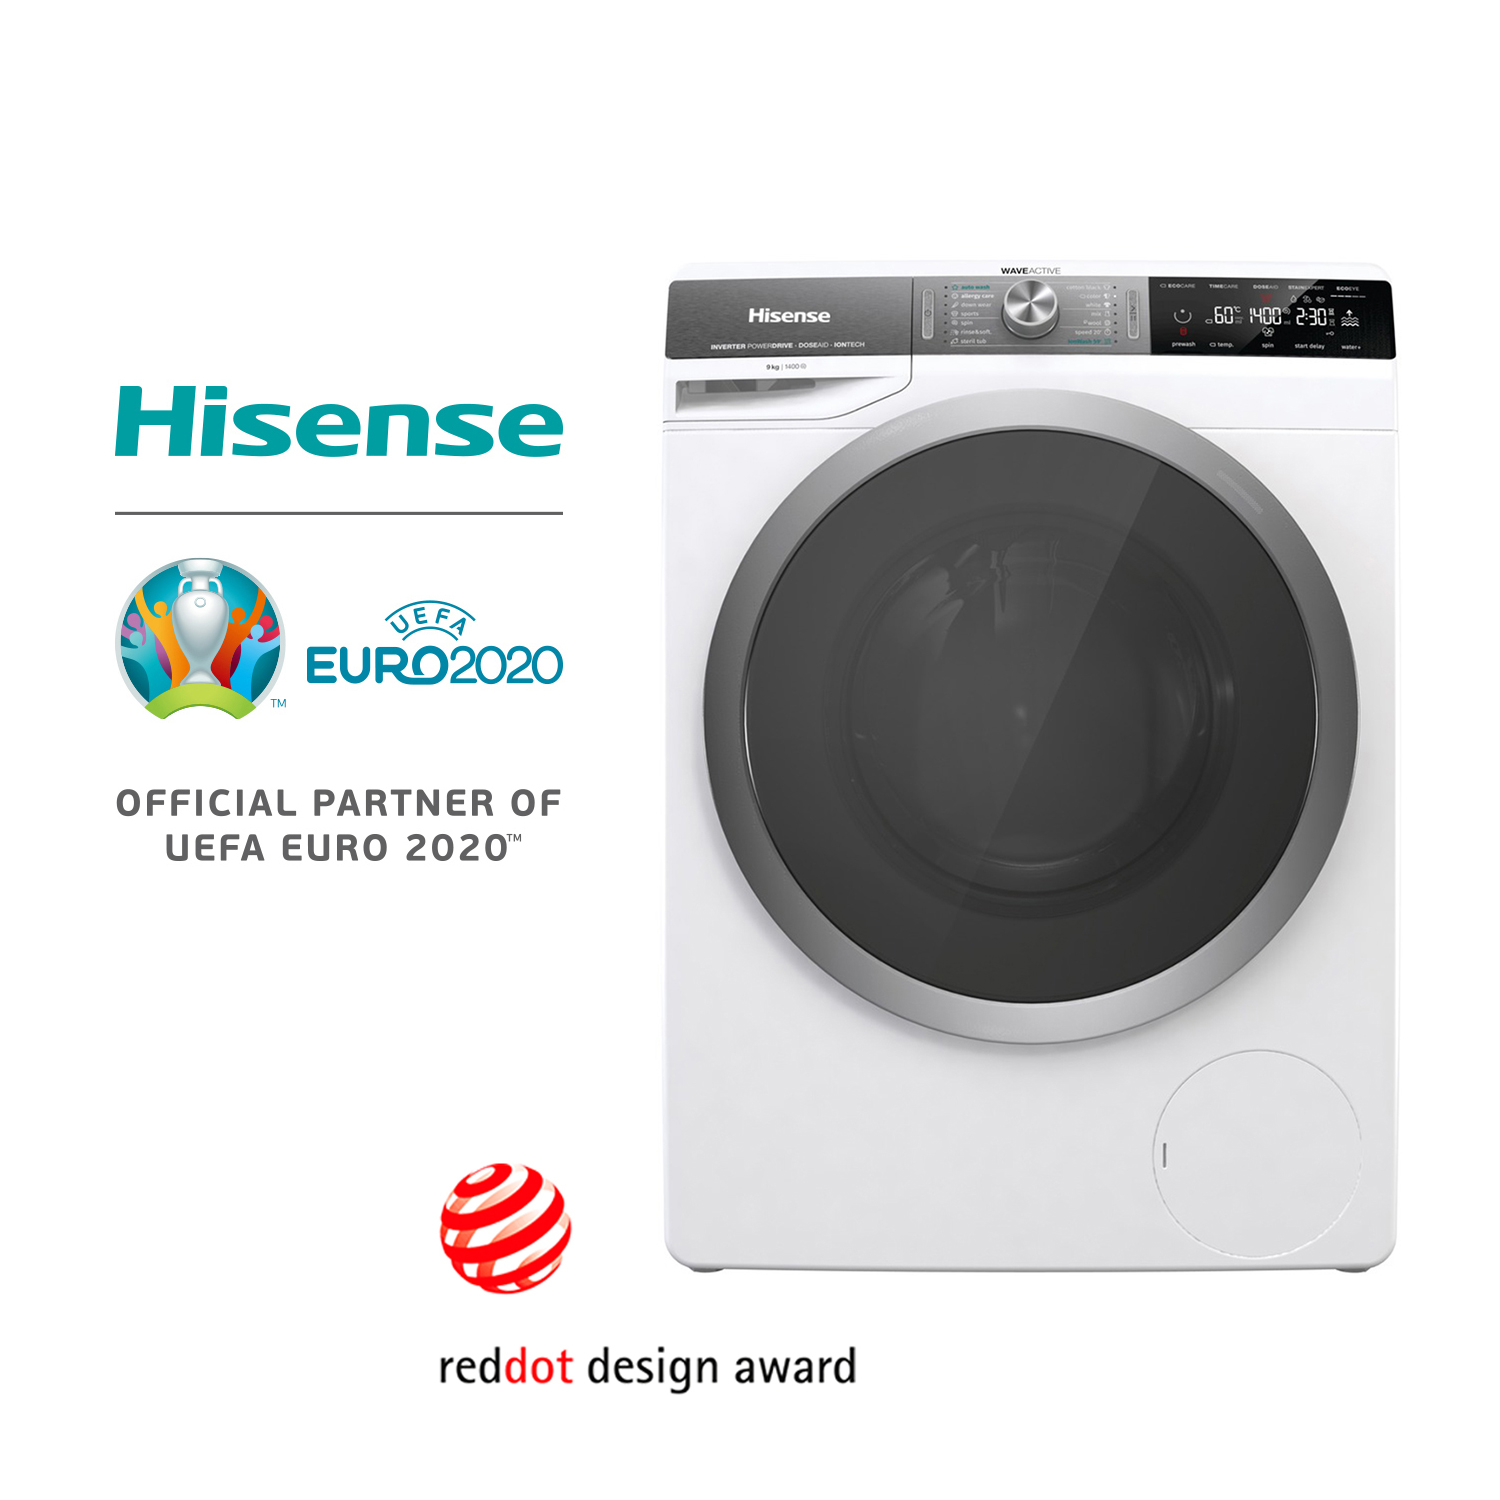 Hisense WFGS9014V Washing Machine, 64L Volume Drum, 9KG Load Capacity, 1400RPM, Automatic, Delay Start, Ecoeye